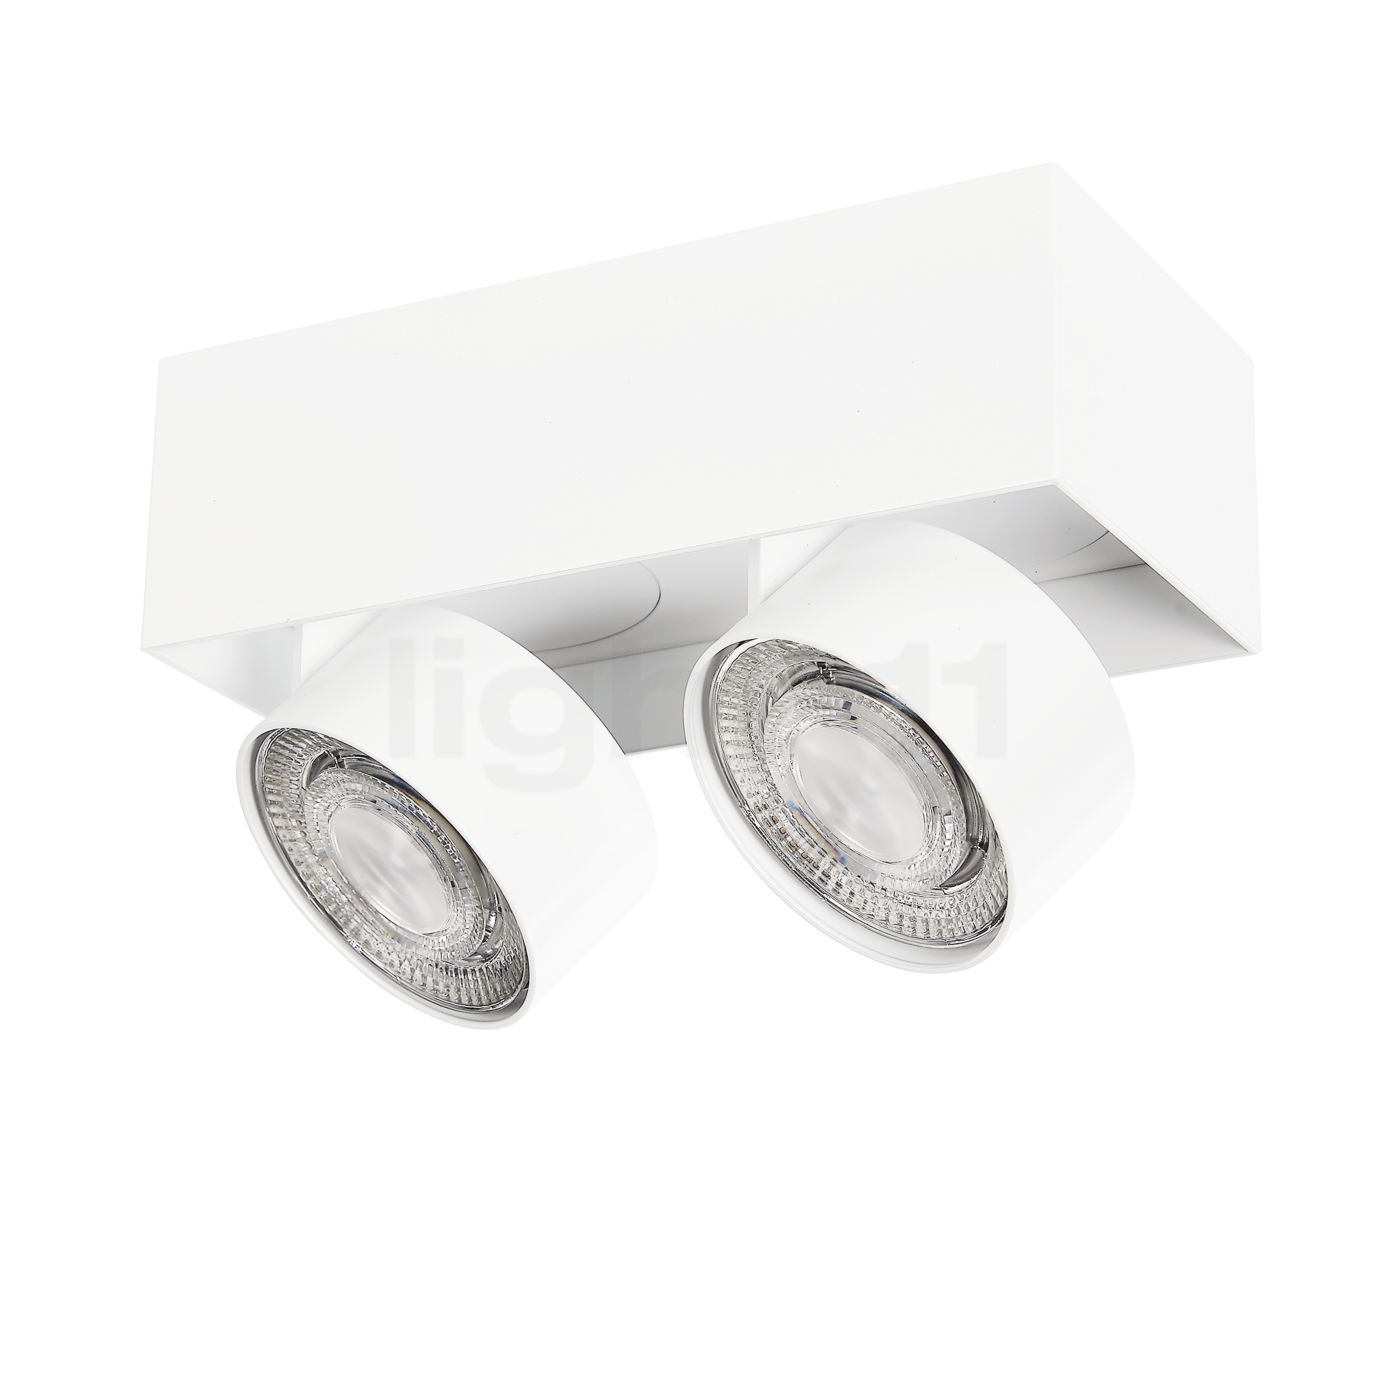 Buy Mawa Wittenberg 4.0 Ceiling Light semi-flush with two spots LED at